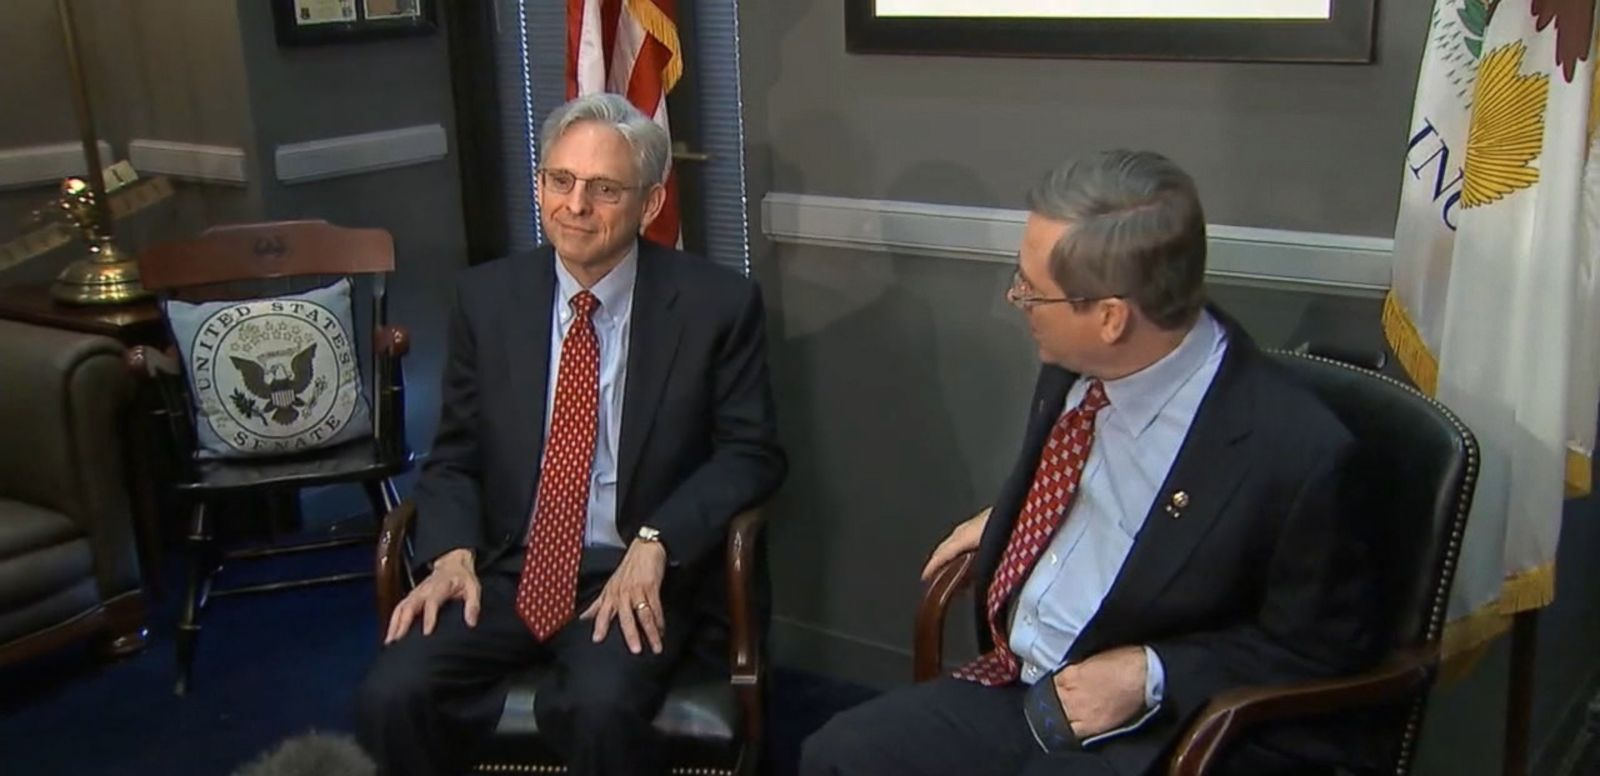 VIDEO: Kirk is the first Republican senator to meet with the SCOTUS nominee.